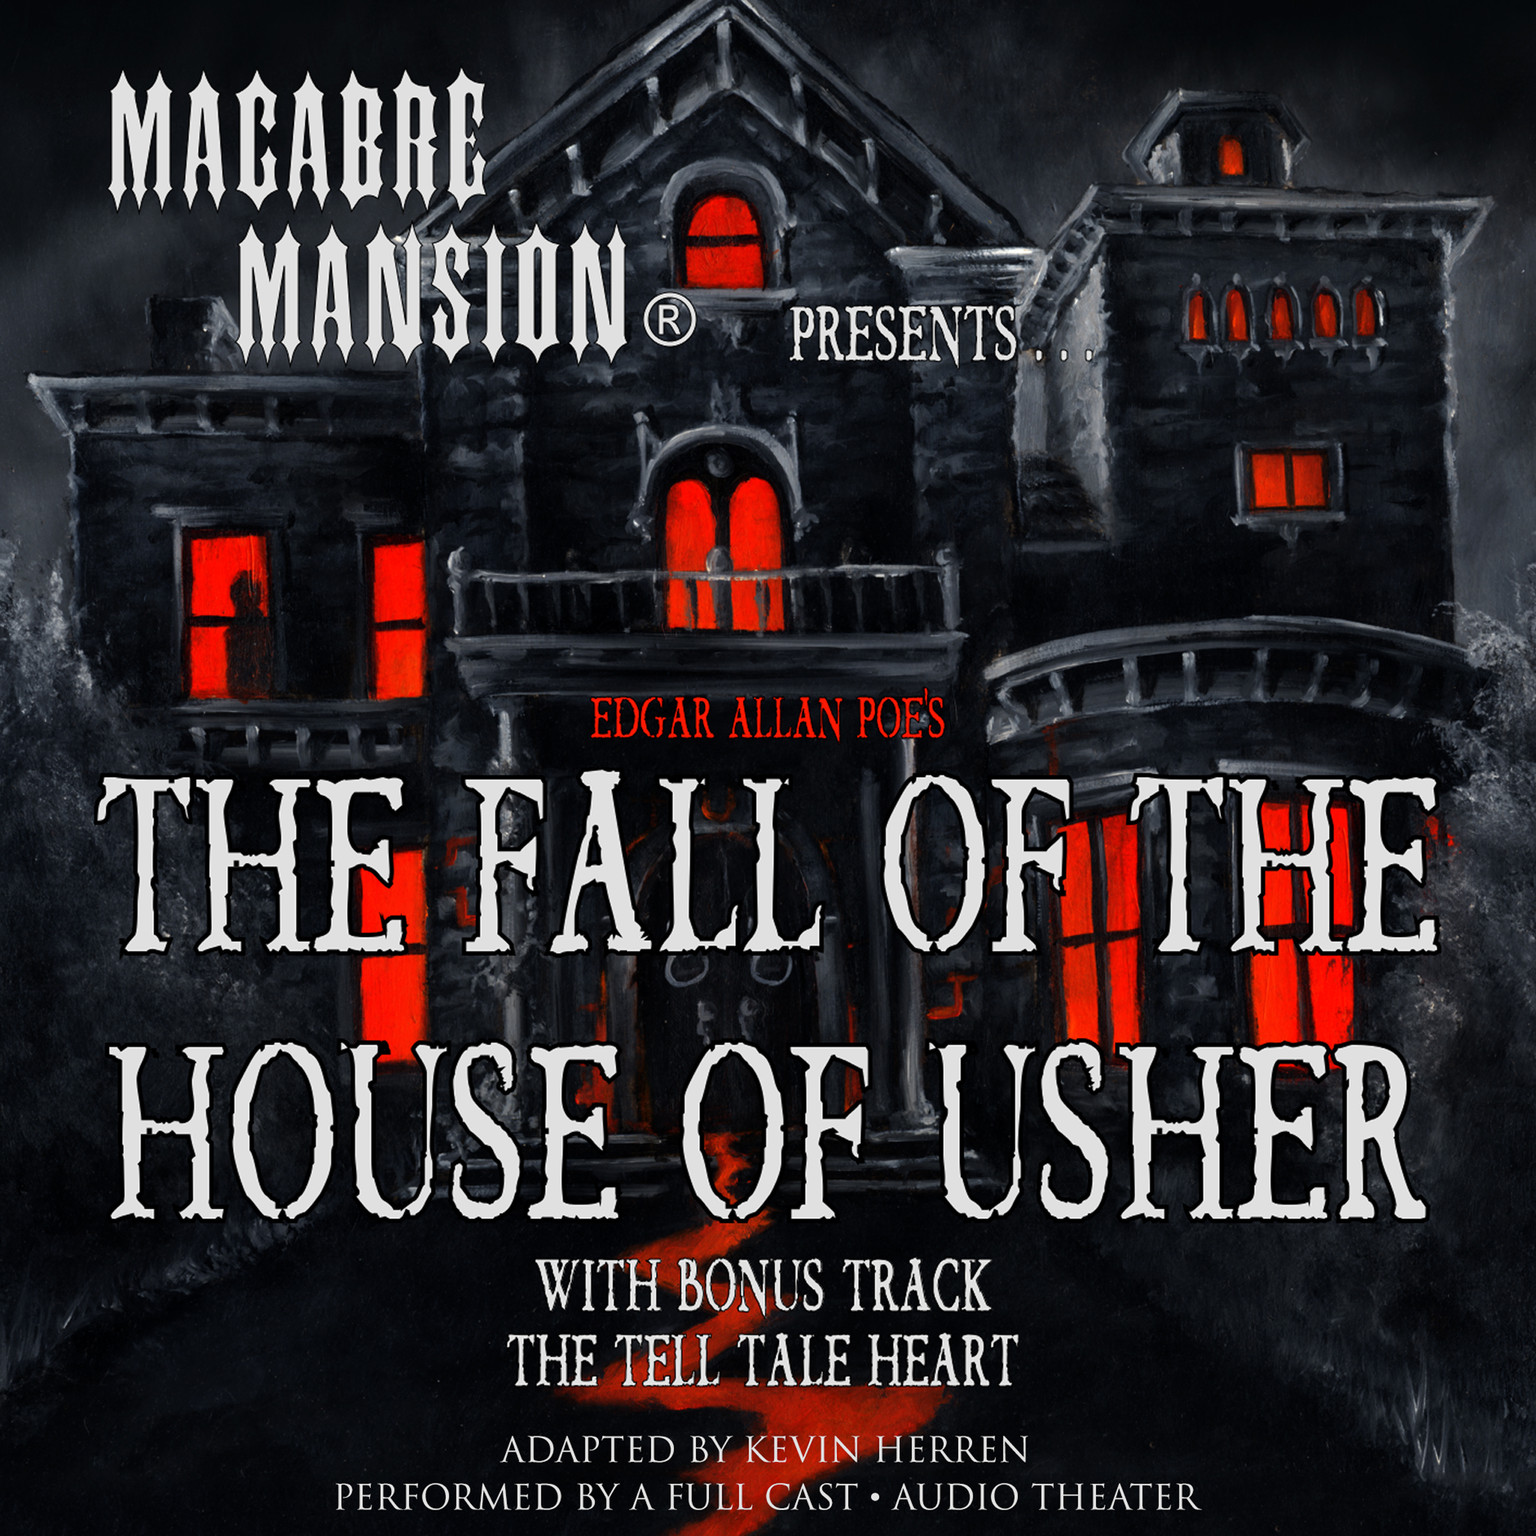 a review of edgar allan poes the fall of the house of usher As stated in my first review of issue 1, we get a mix of the fall of the house of  usher, and poe's tale the oval portrait issue #2 adds a nod to.